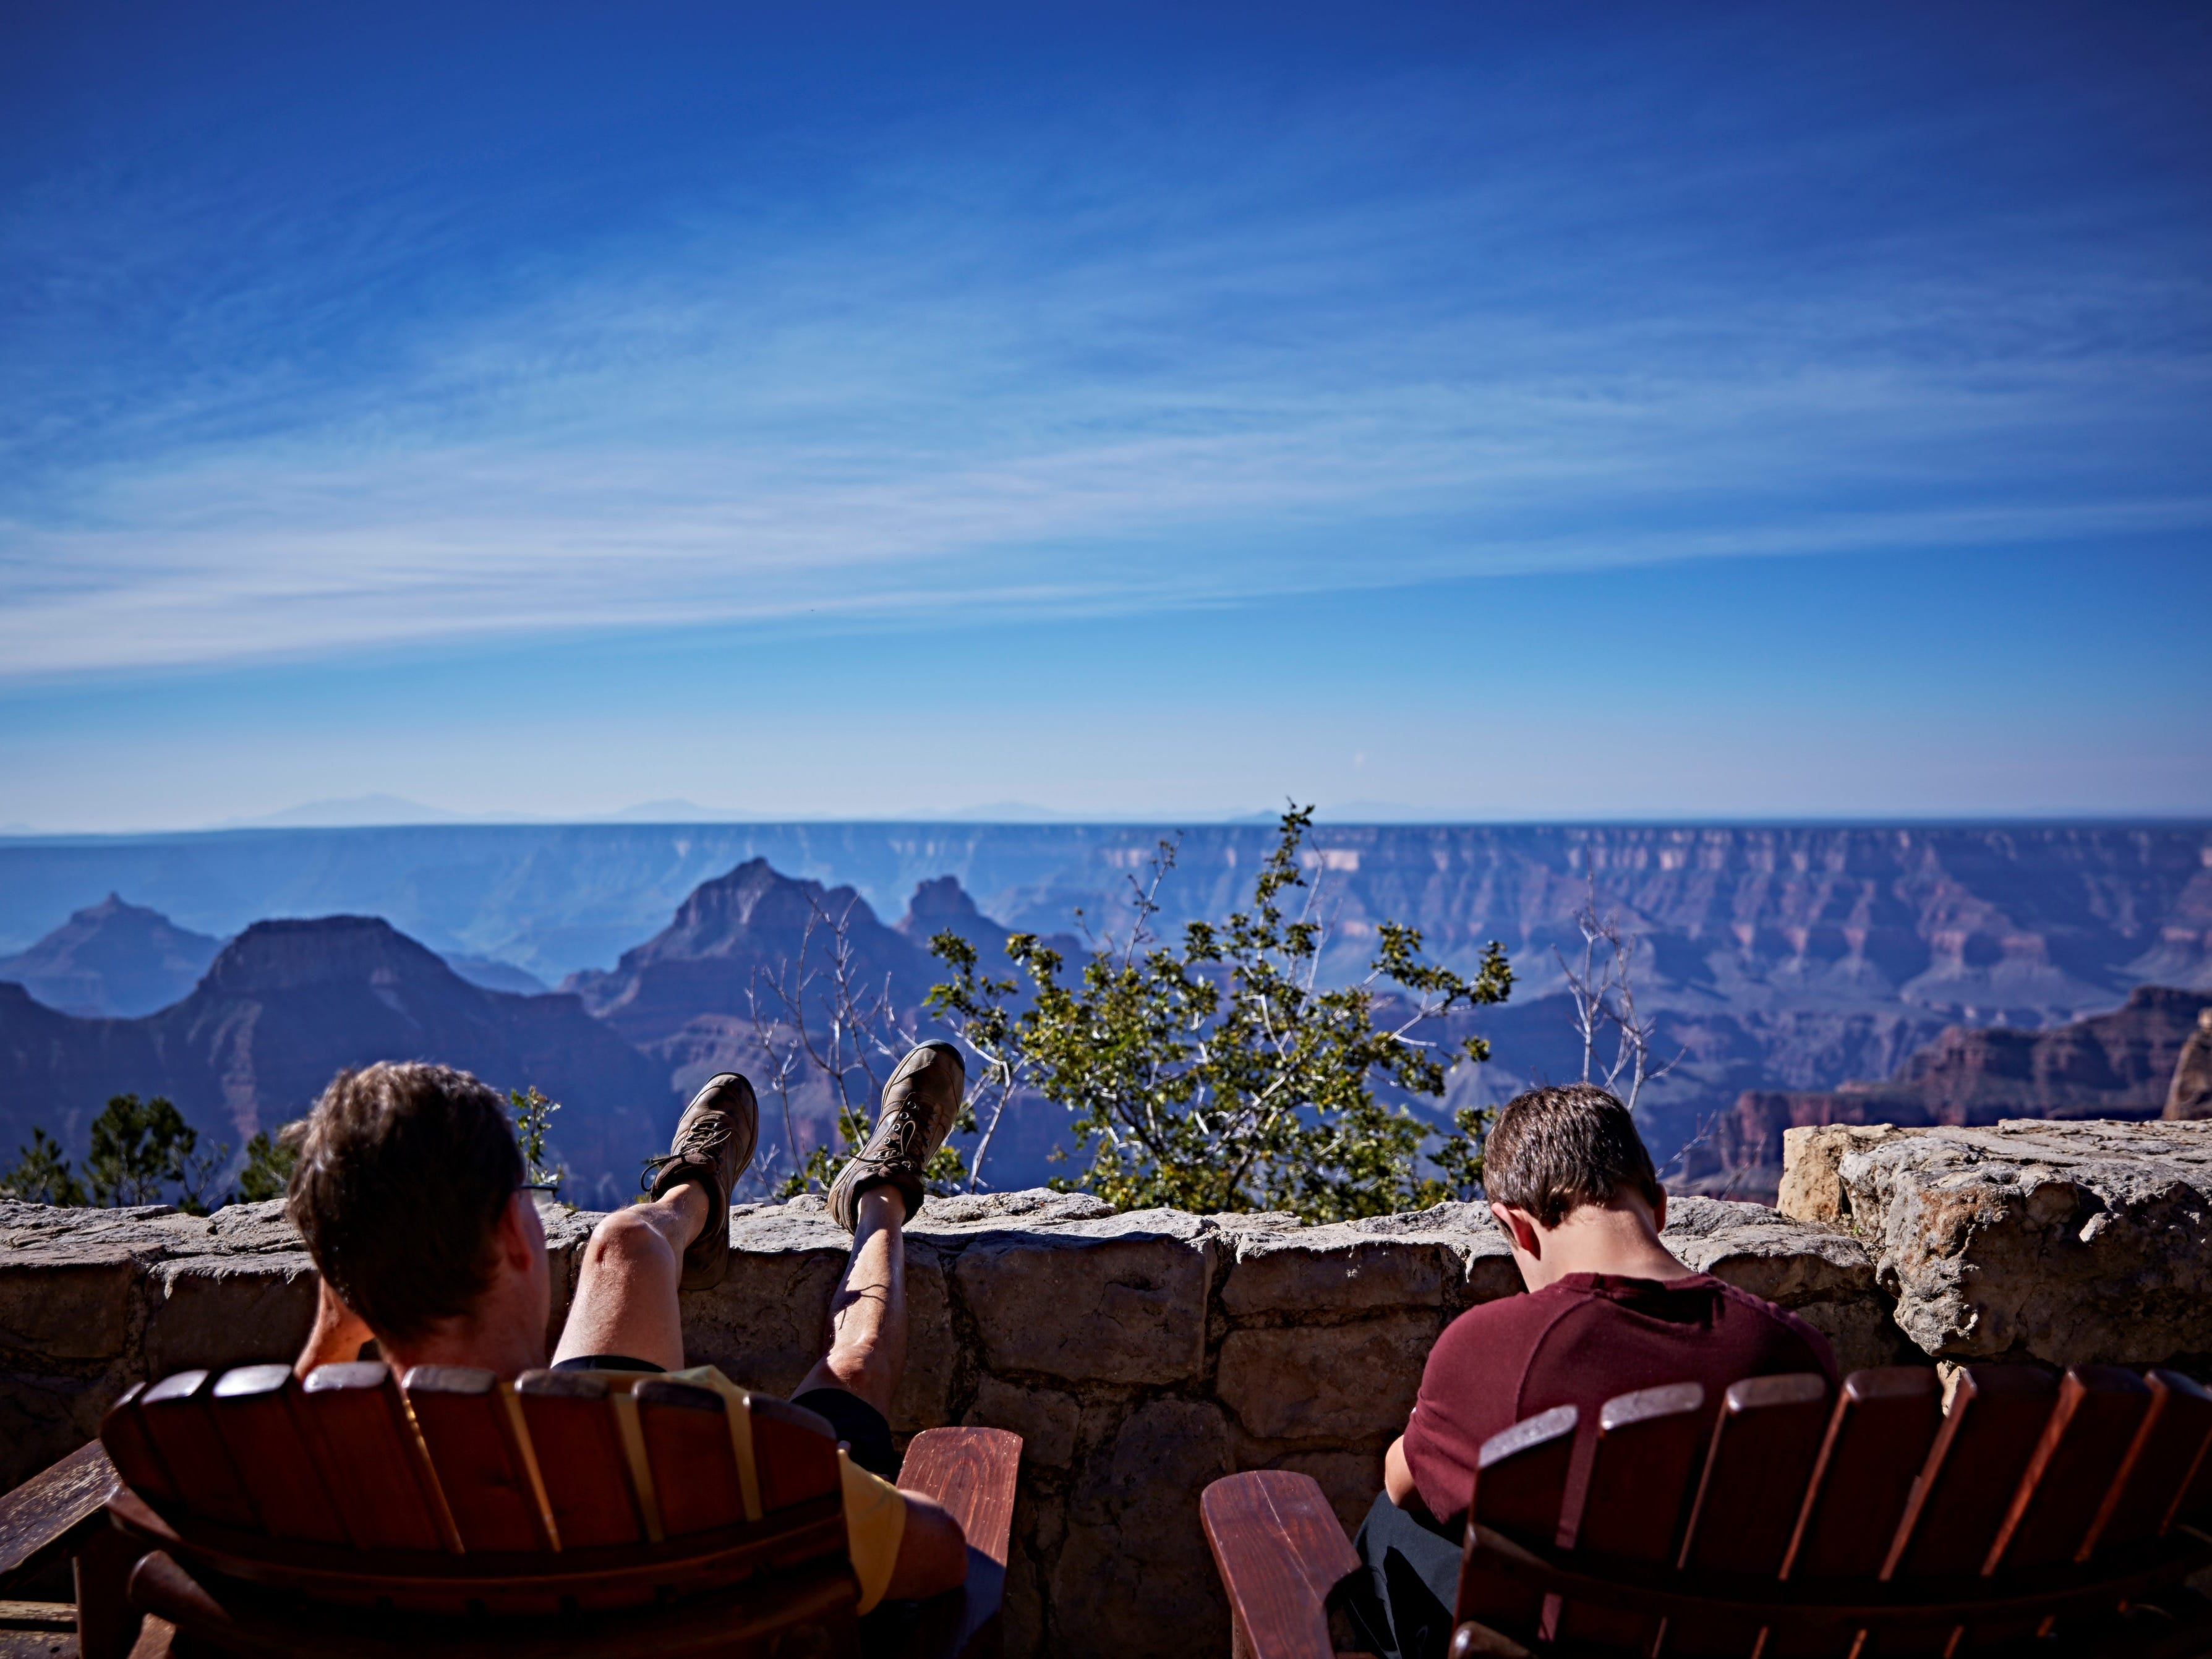 Pull up an Adirondack chair and enjoy the view from the patio of the Grand Canyon North Rim Lodge.